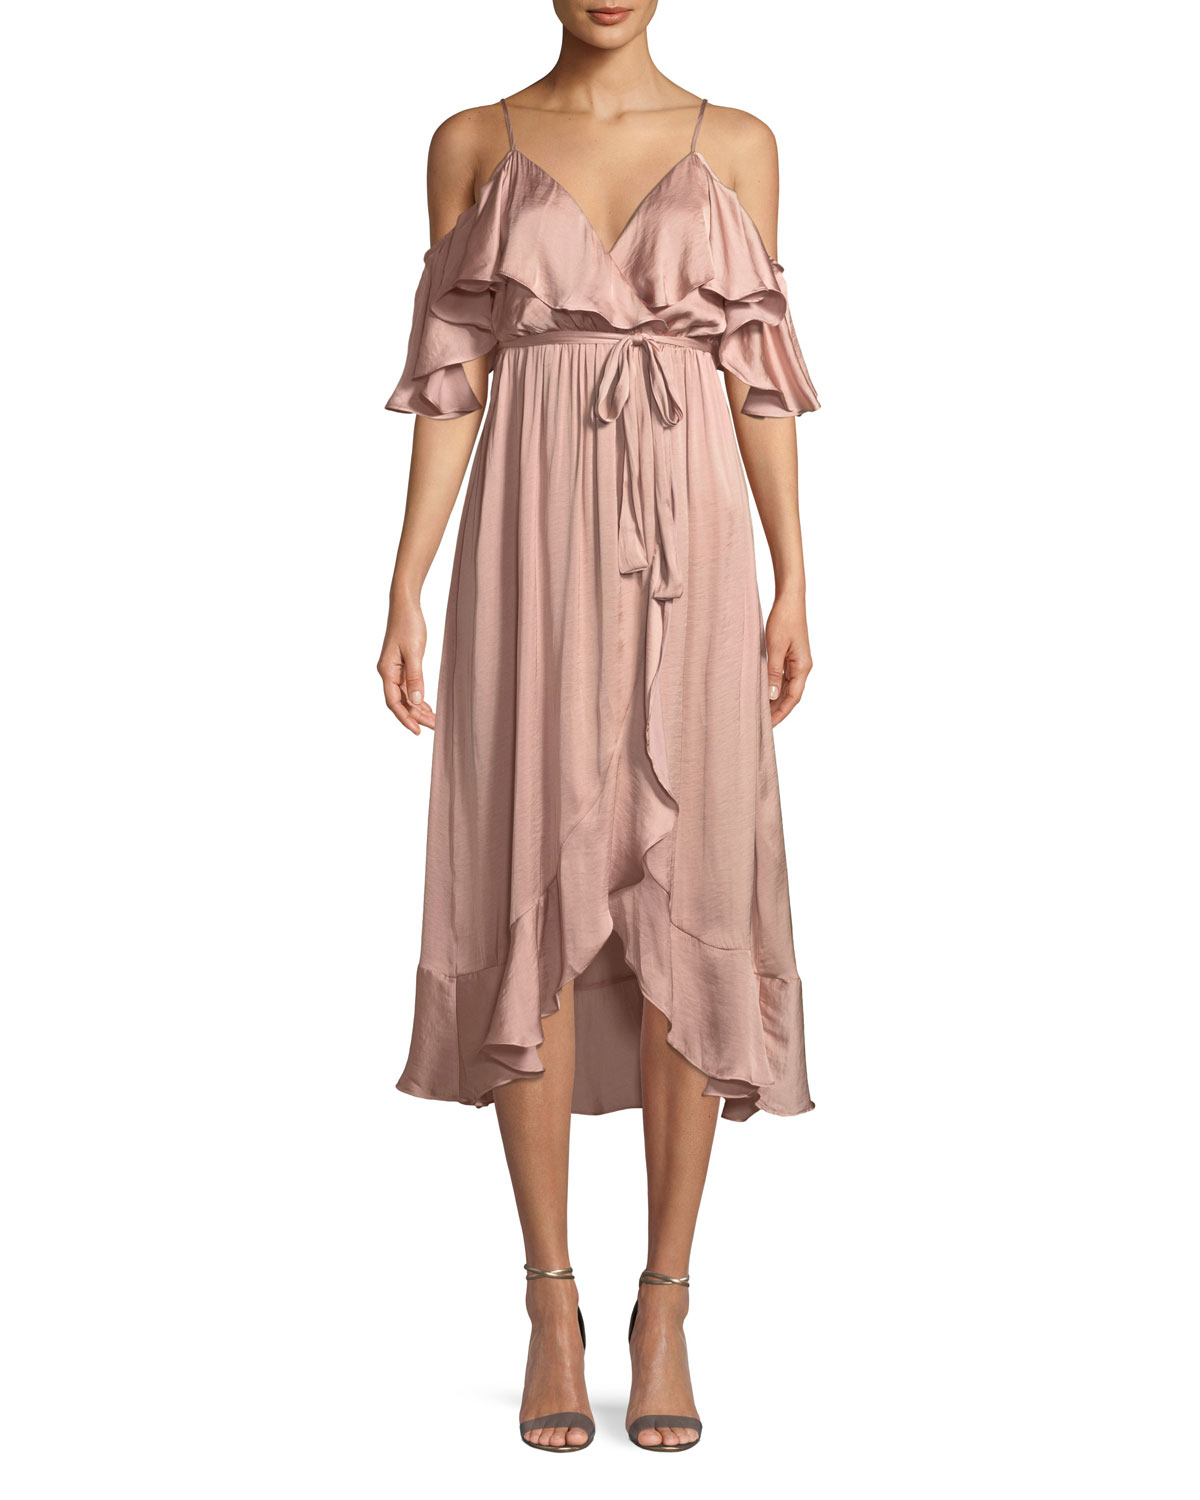 Bardot Bea Cold Shoulder Ruffle Wrap Dress Neiman Marcus